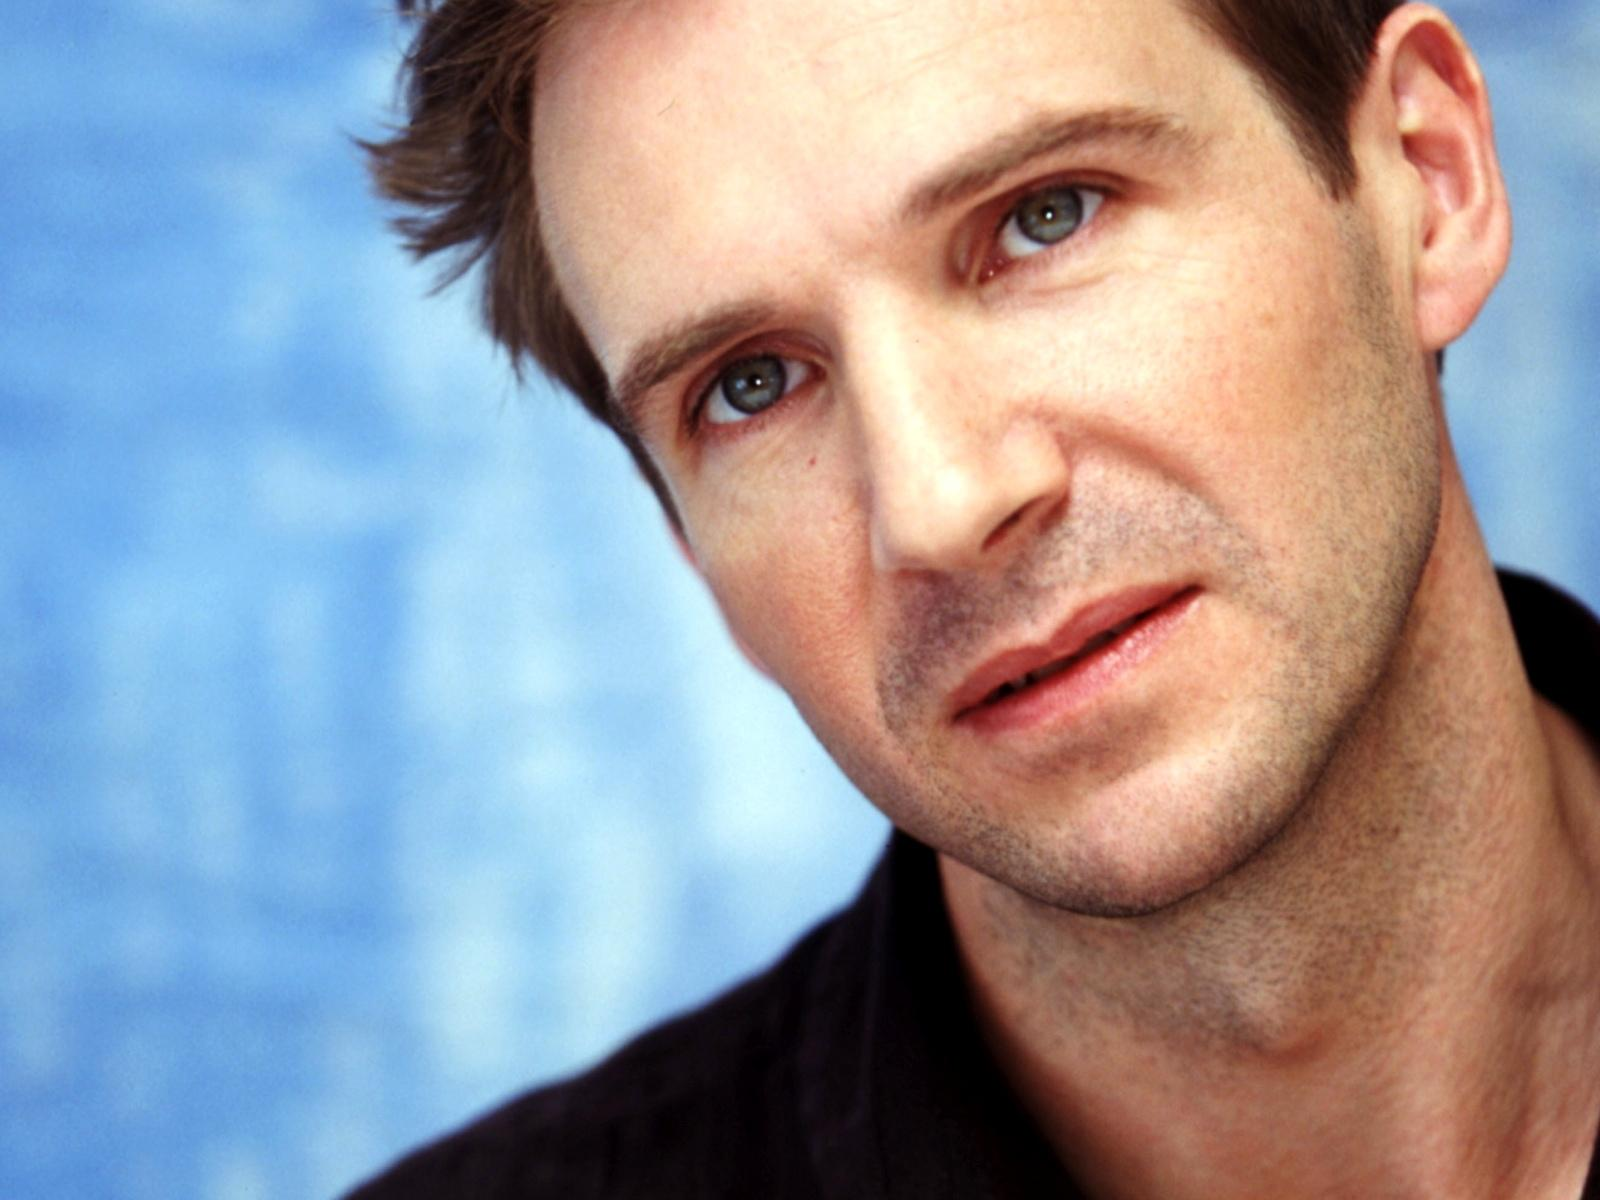 Have you ever seen Ralph Fiennes!